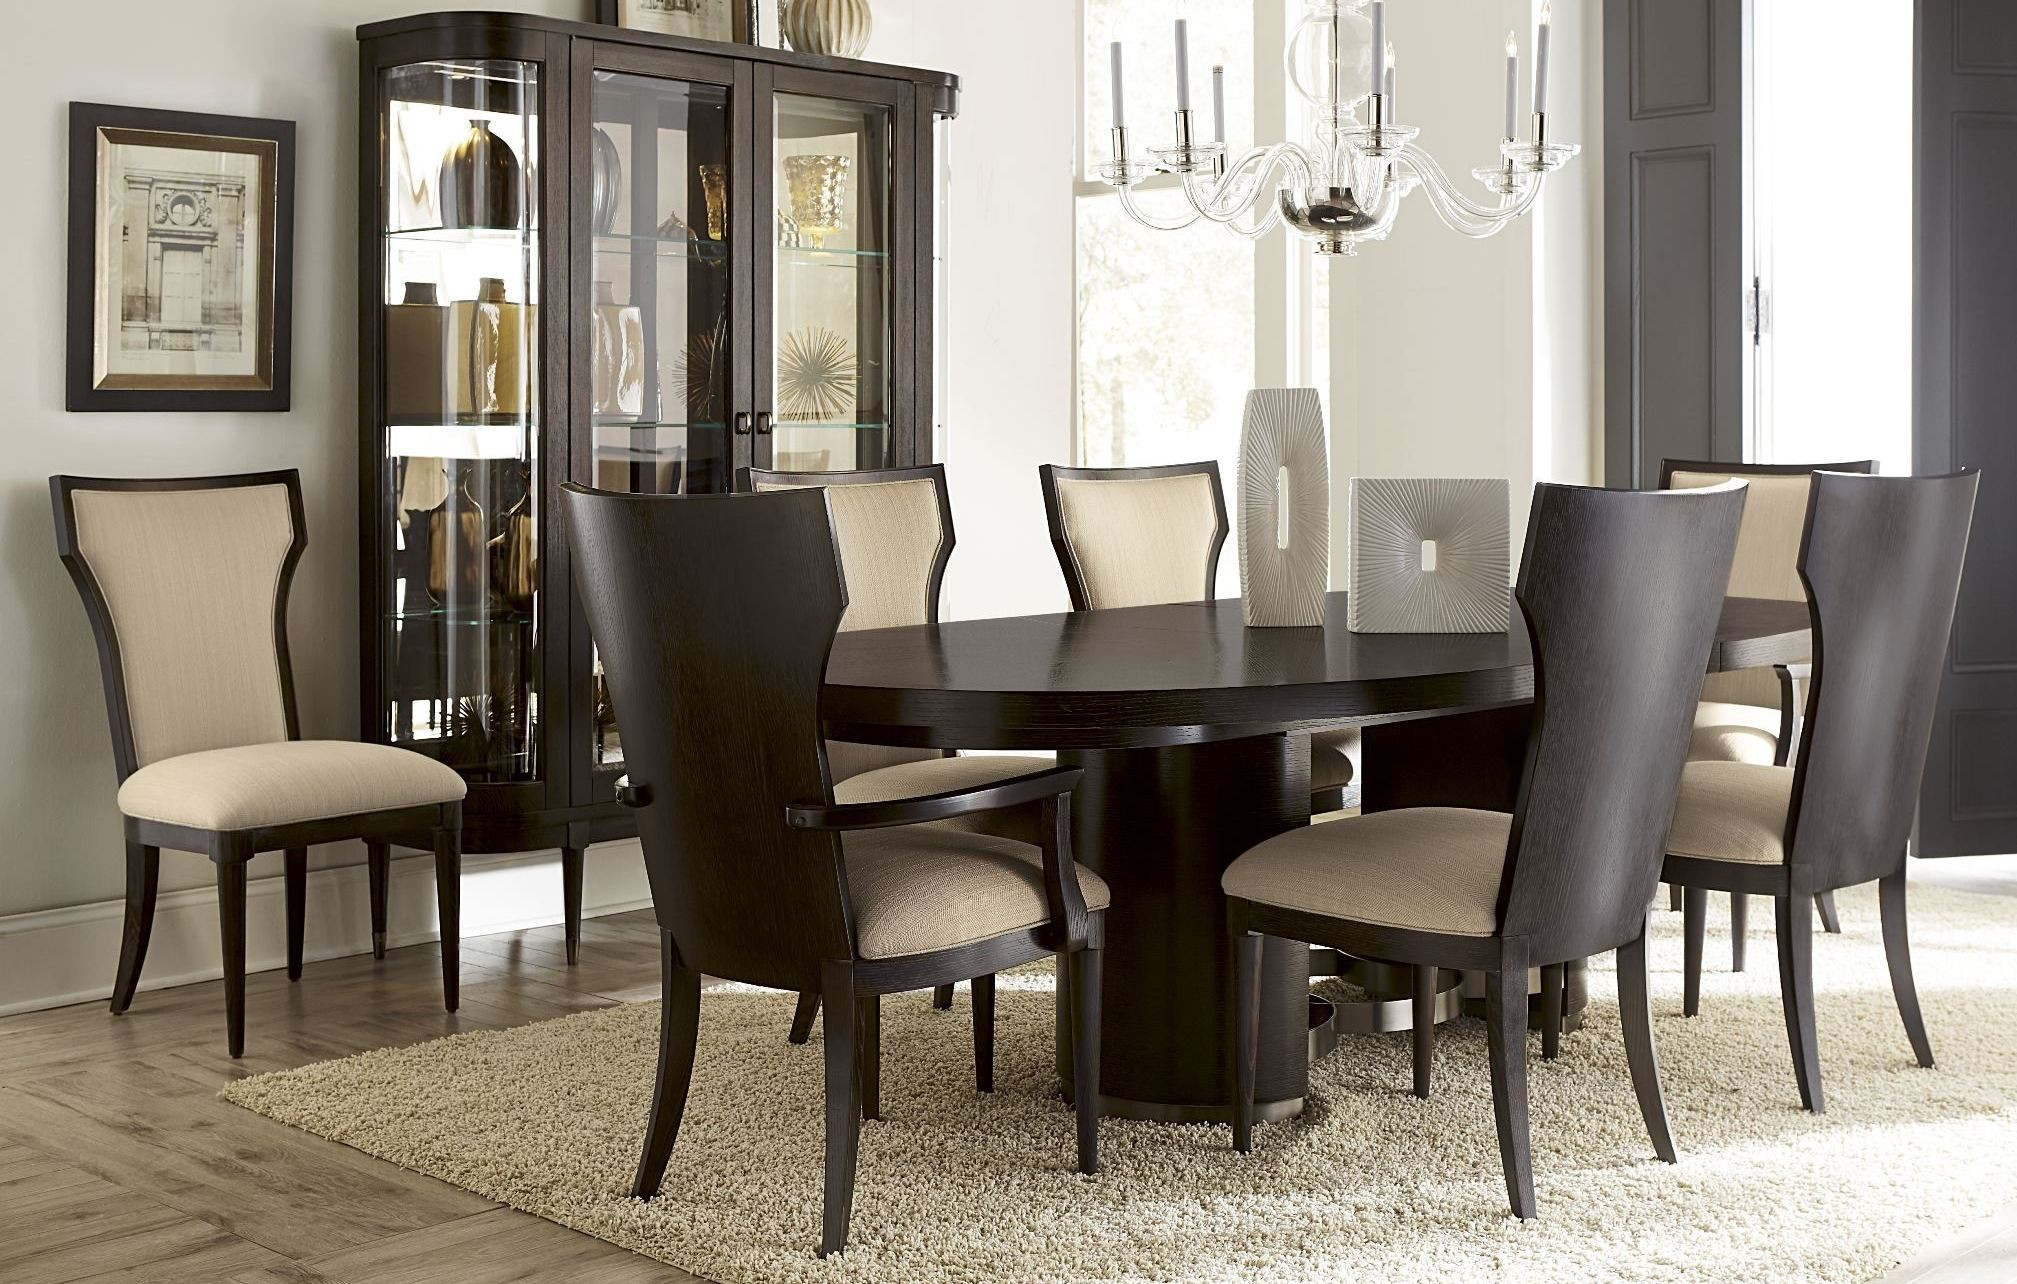 greenpoint oval dining room set from art 214223 2304 coleman